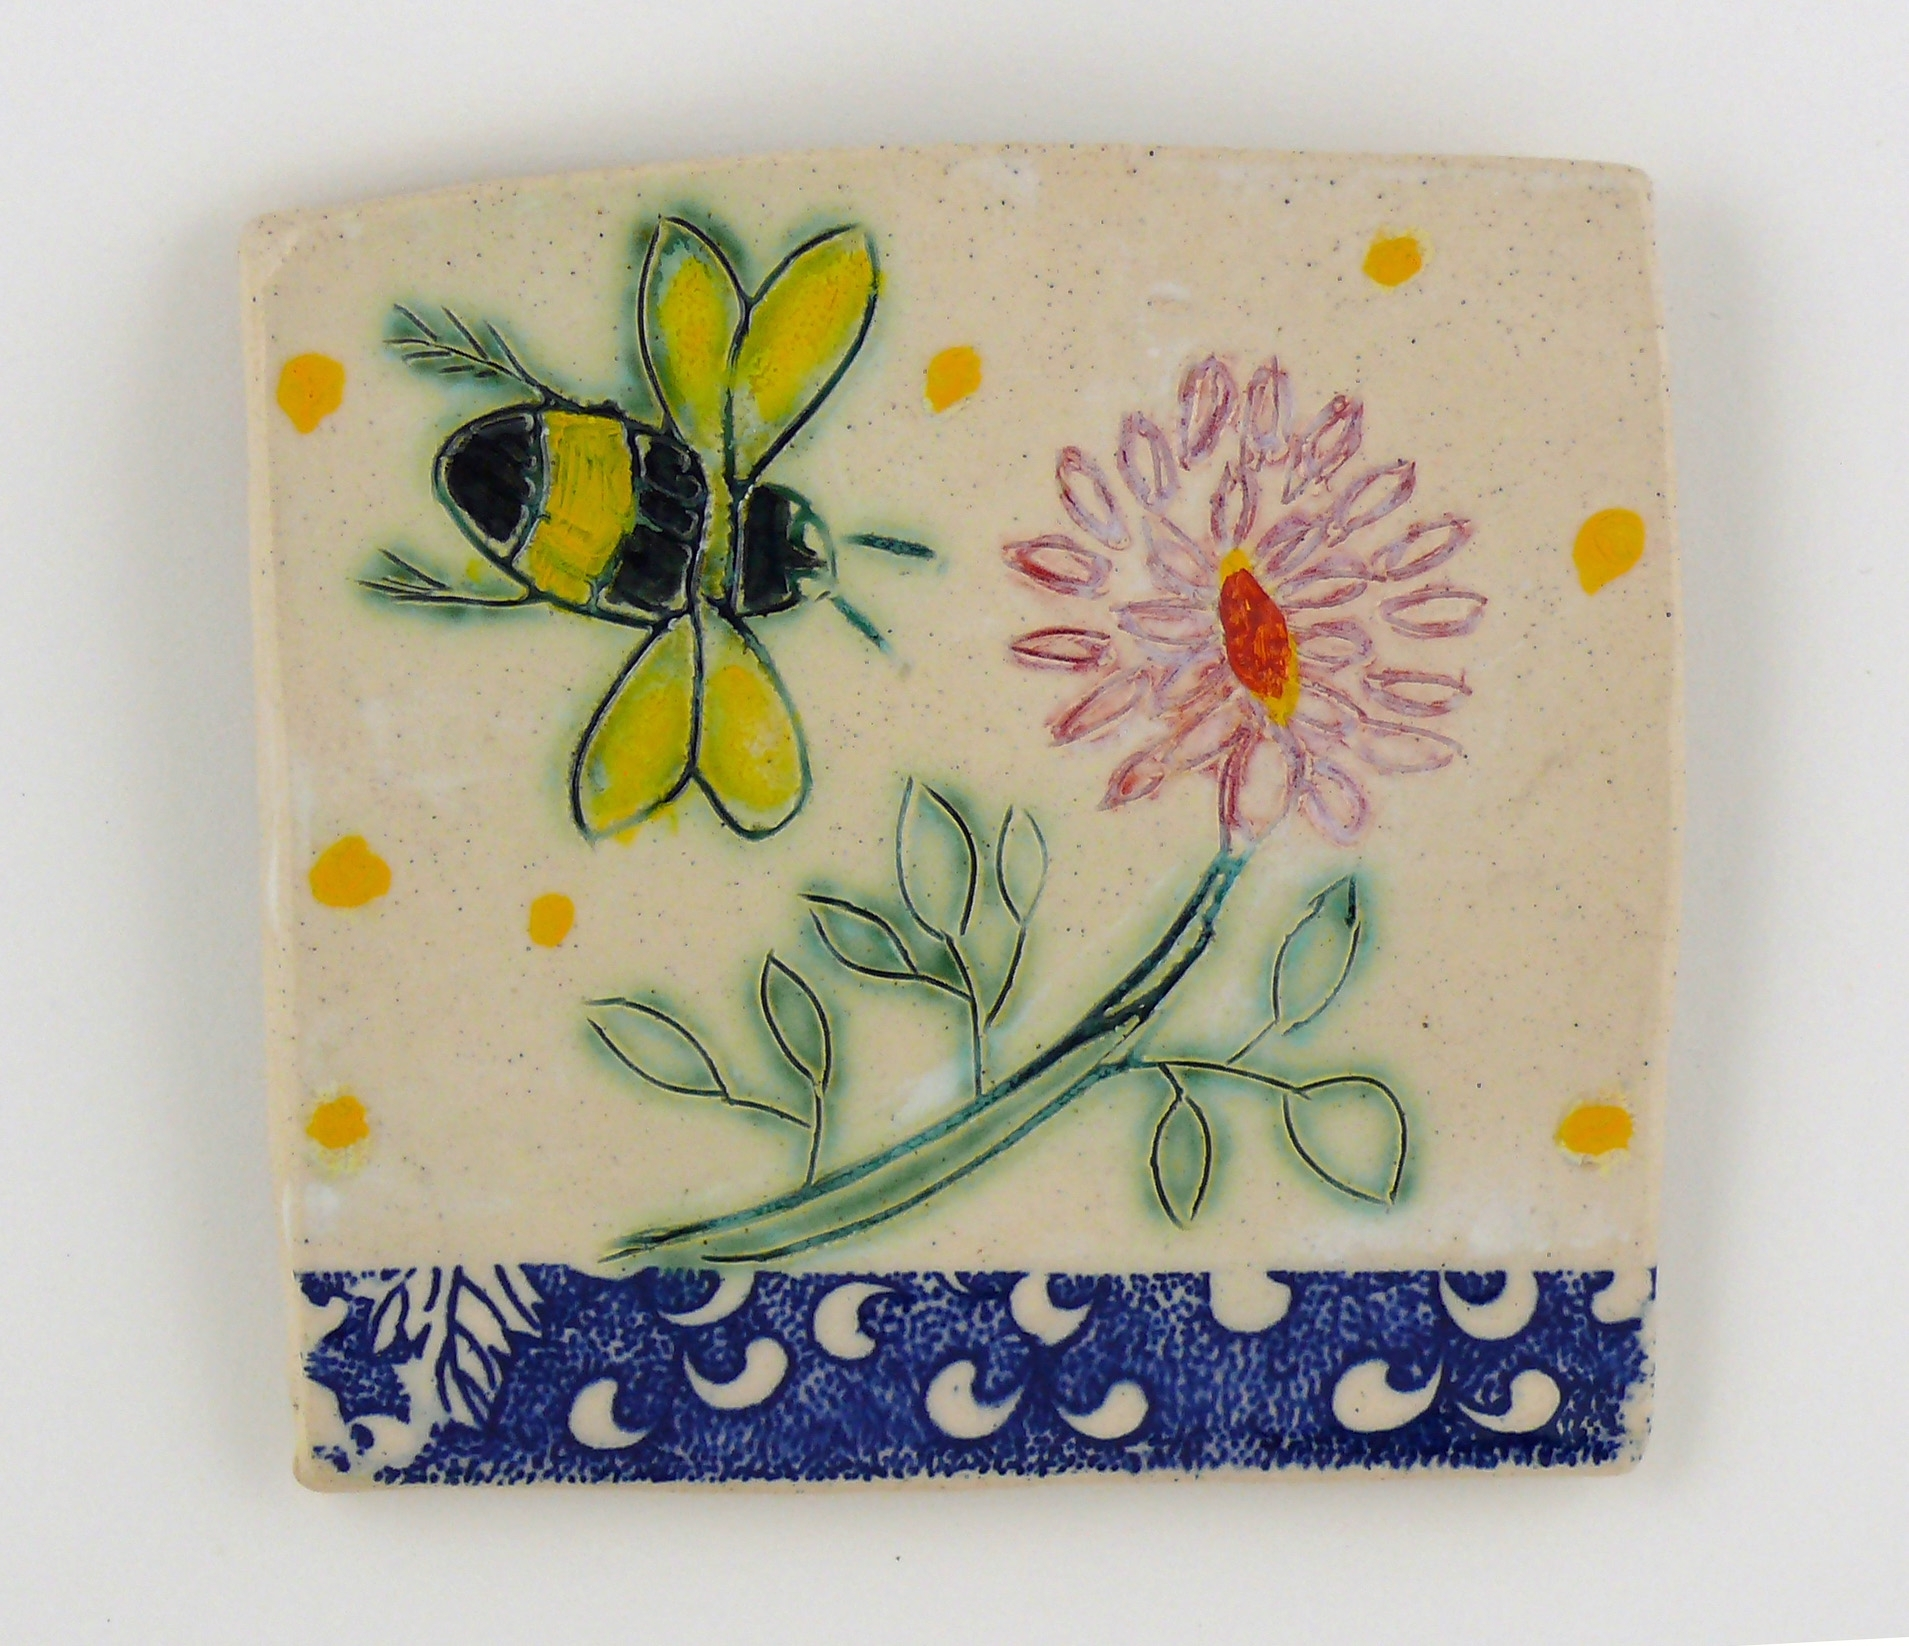 kiffney_flower_tile_aug.JPG